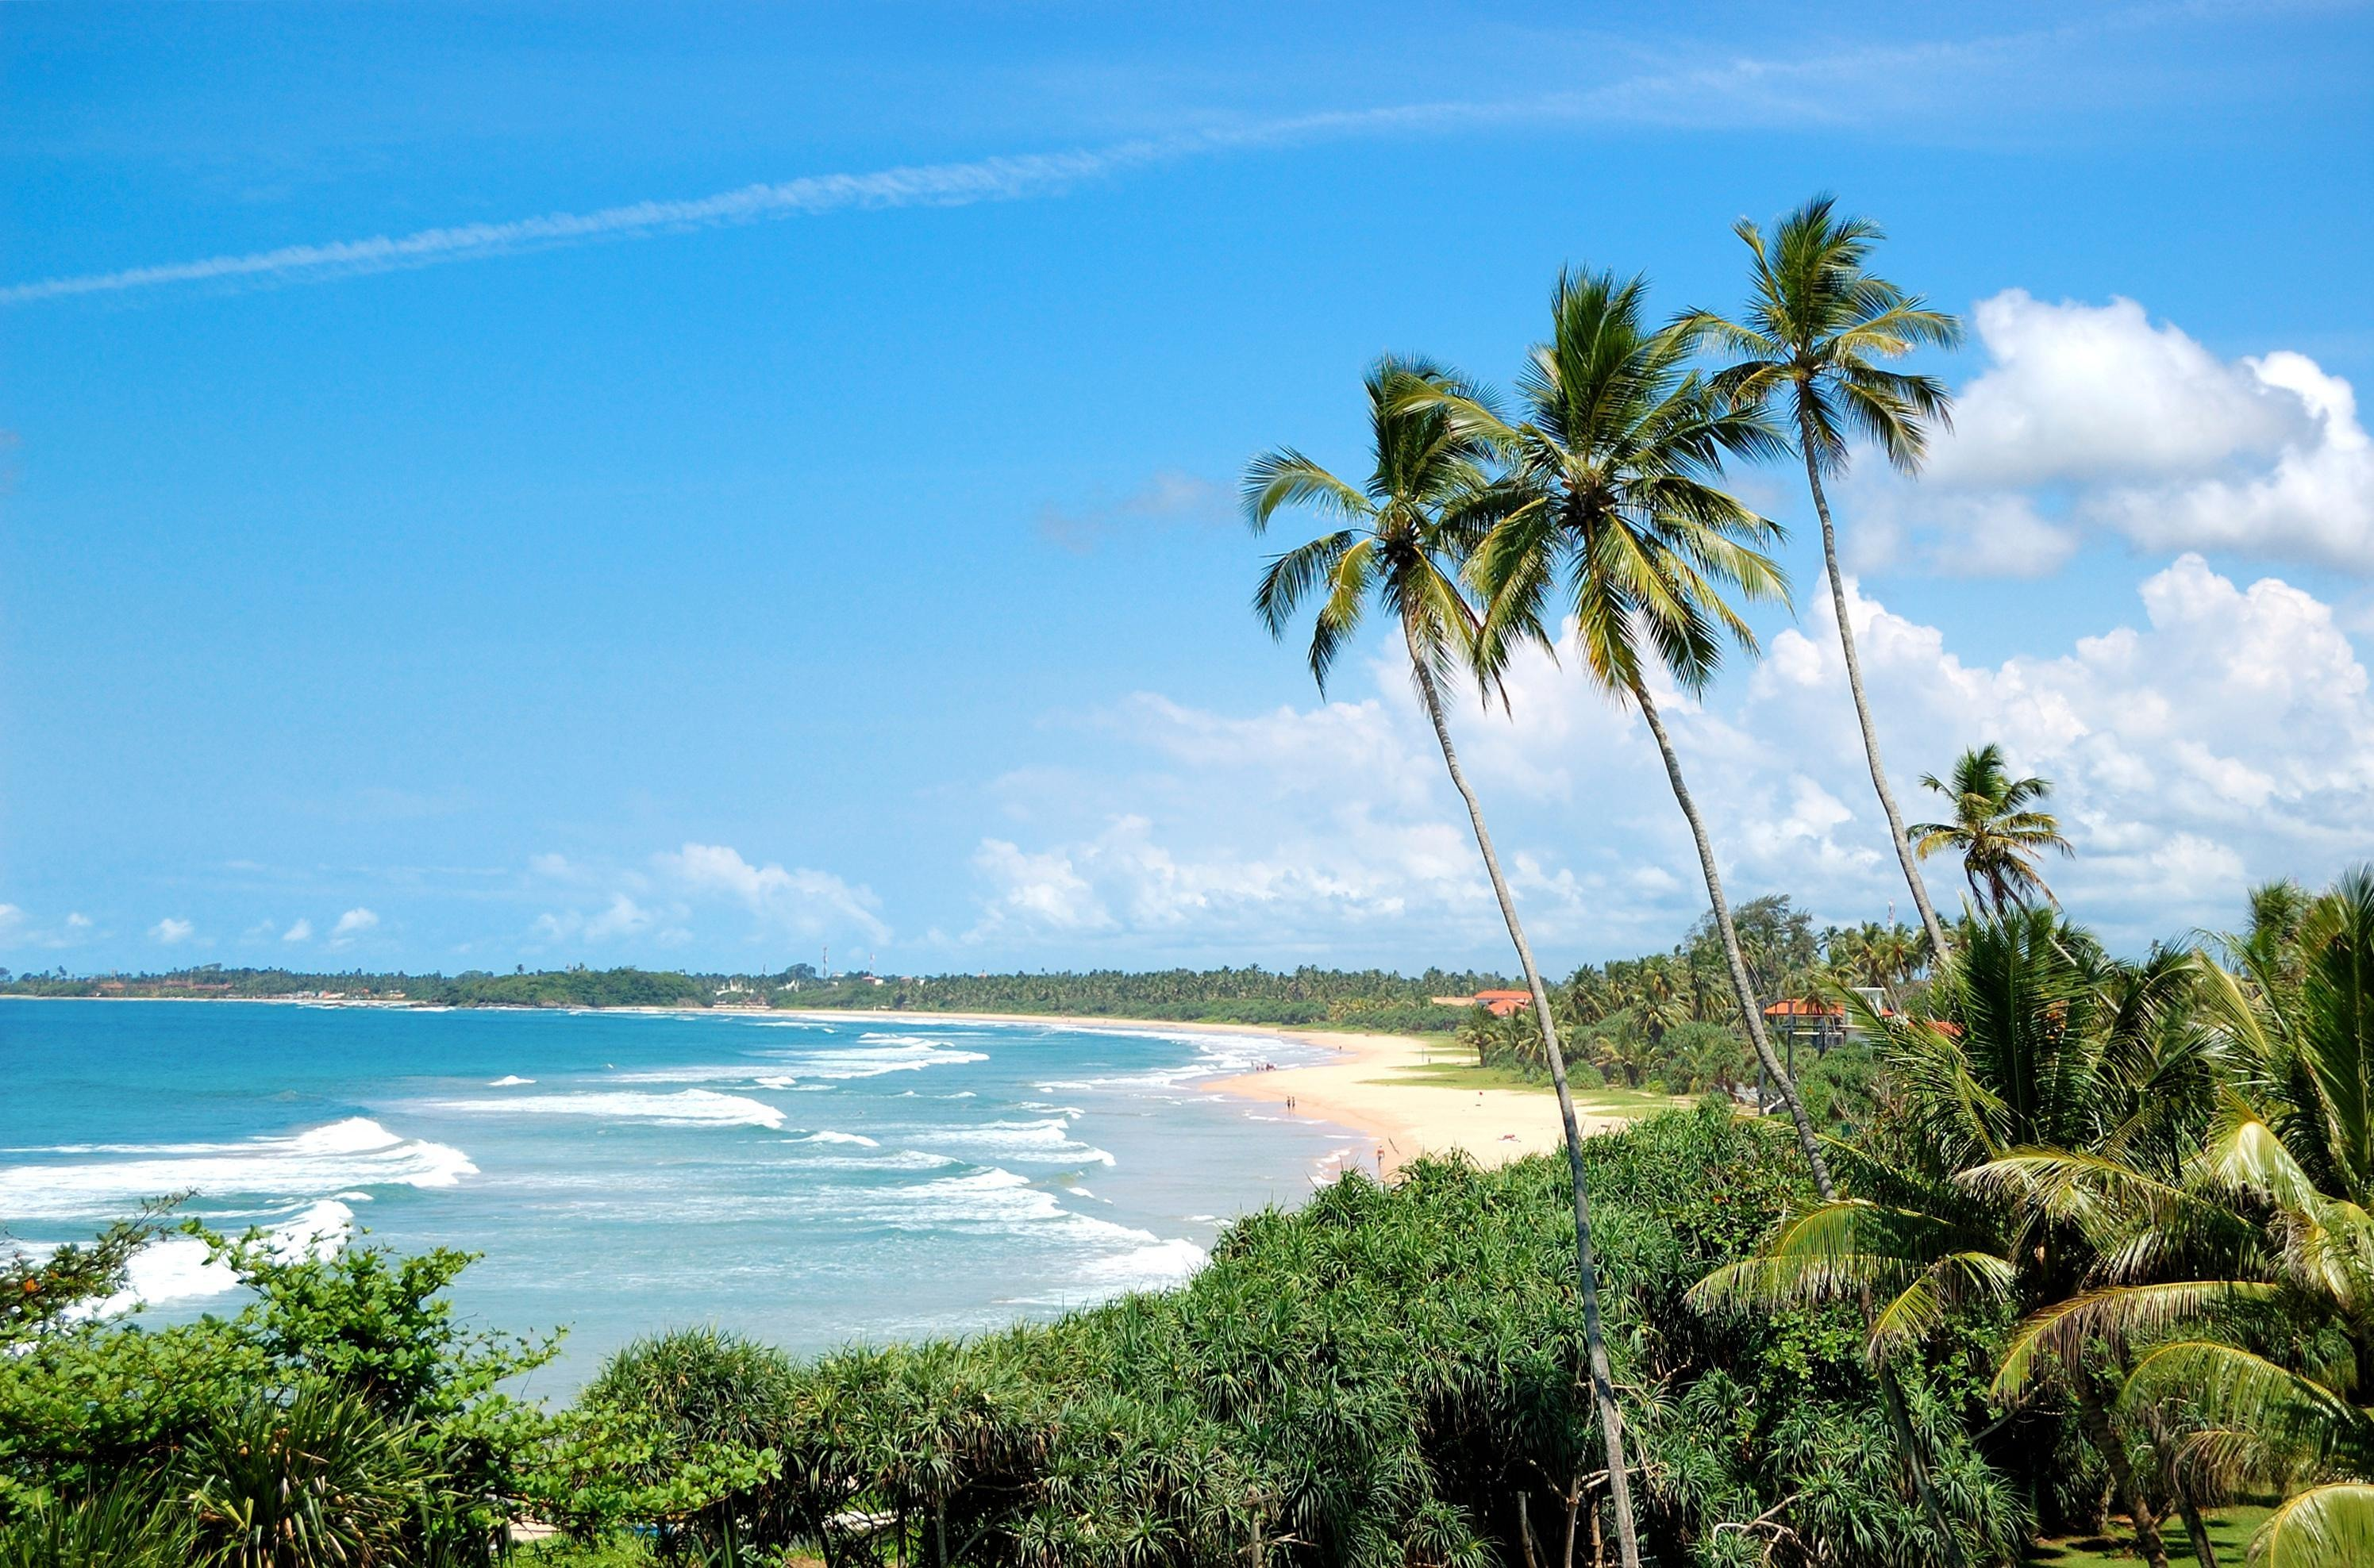 How to Spend 1 Day in Bentota